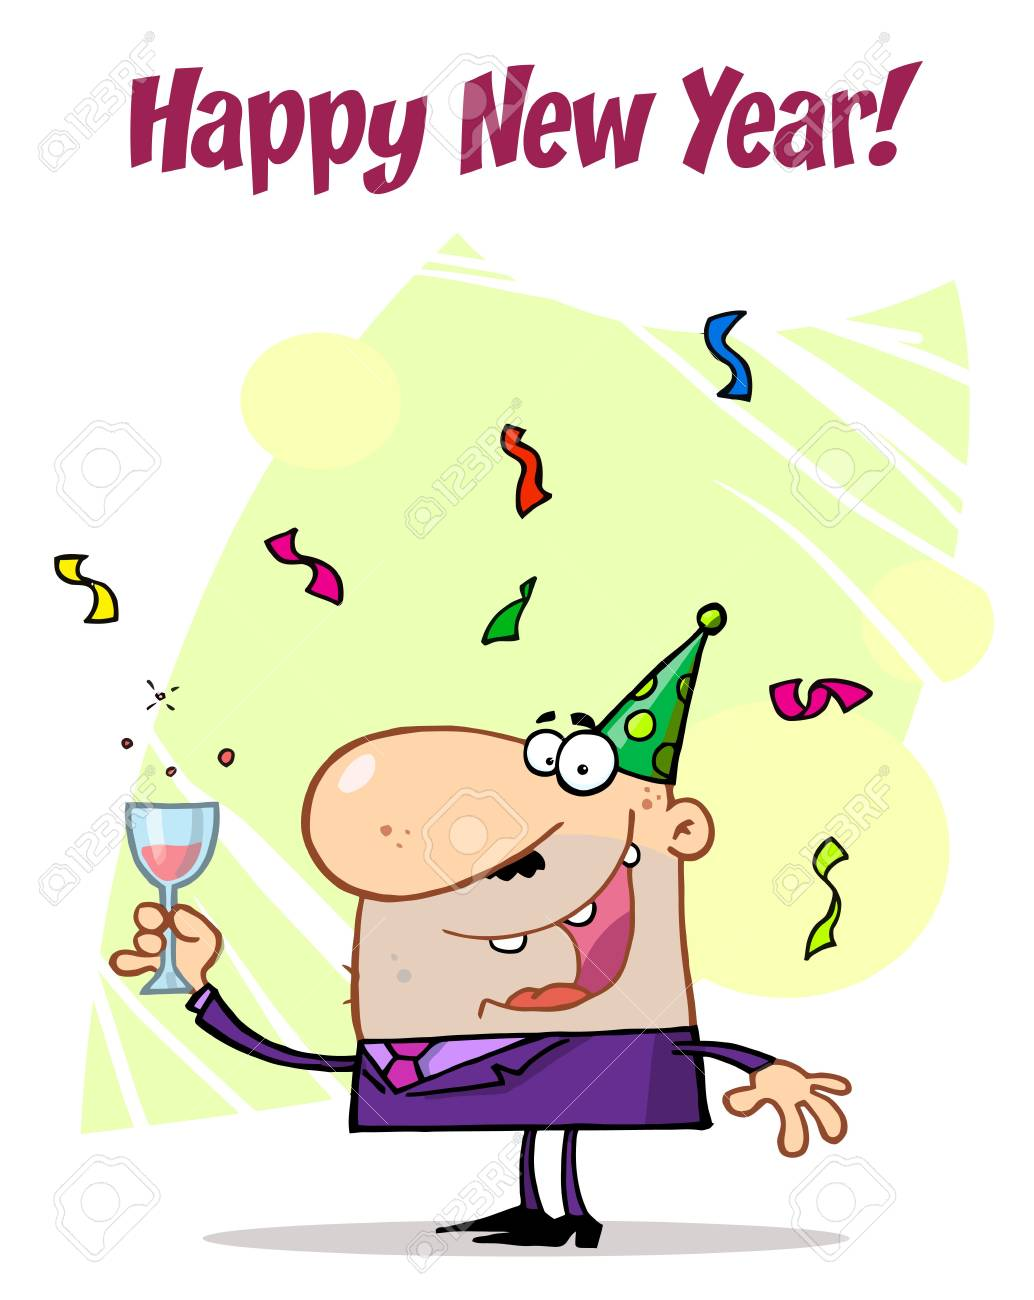 Happy New Year Greeting Of A Man Toasting At A Party Stock Vector - 6906411